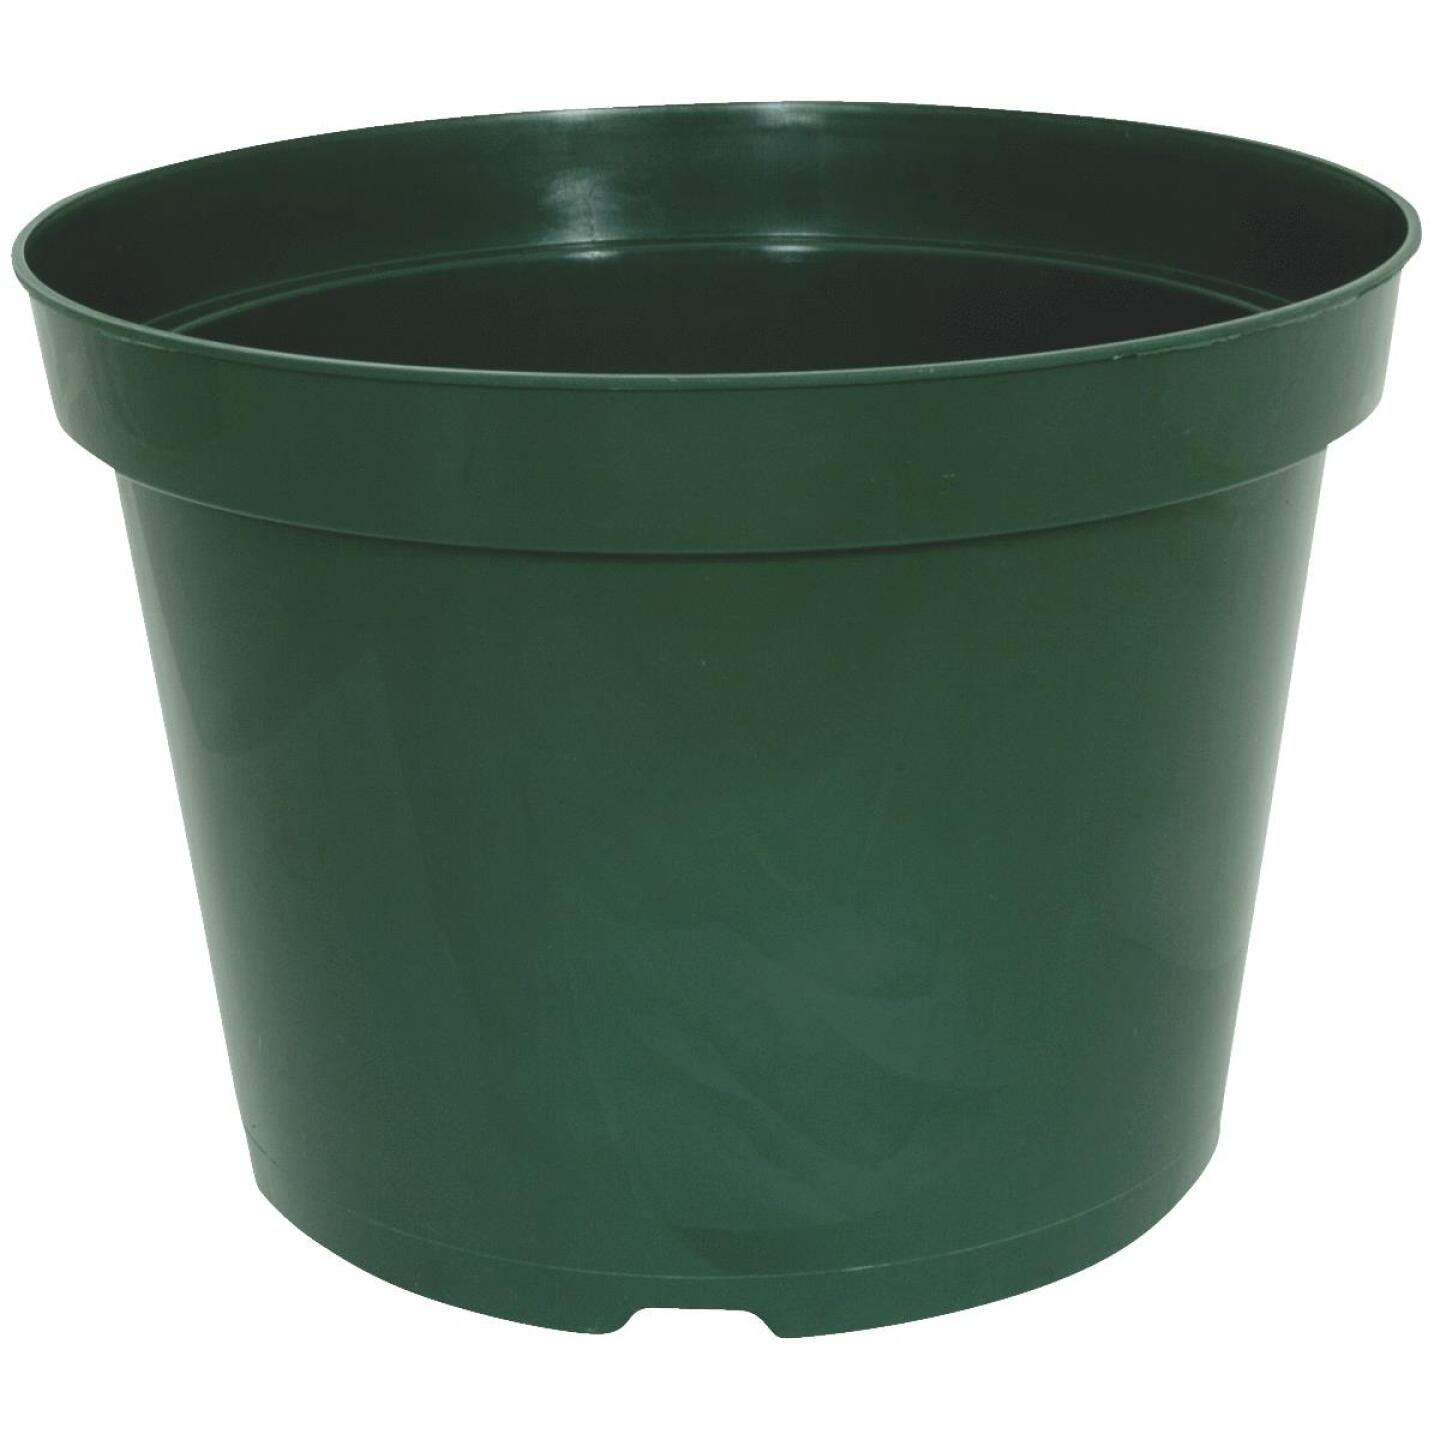 Myers 6 In. H. x 8 In. Dia. Green Plastic Flower Pot Image 1